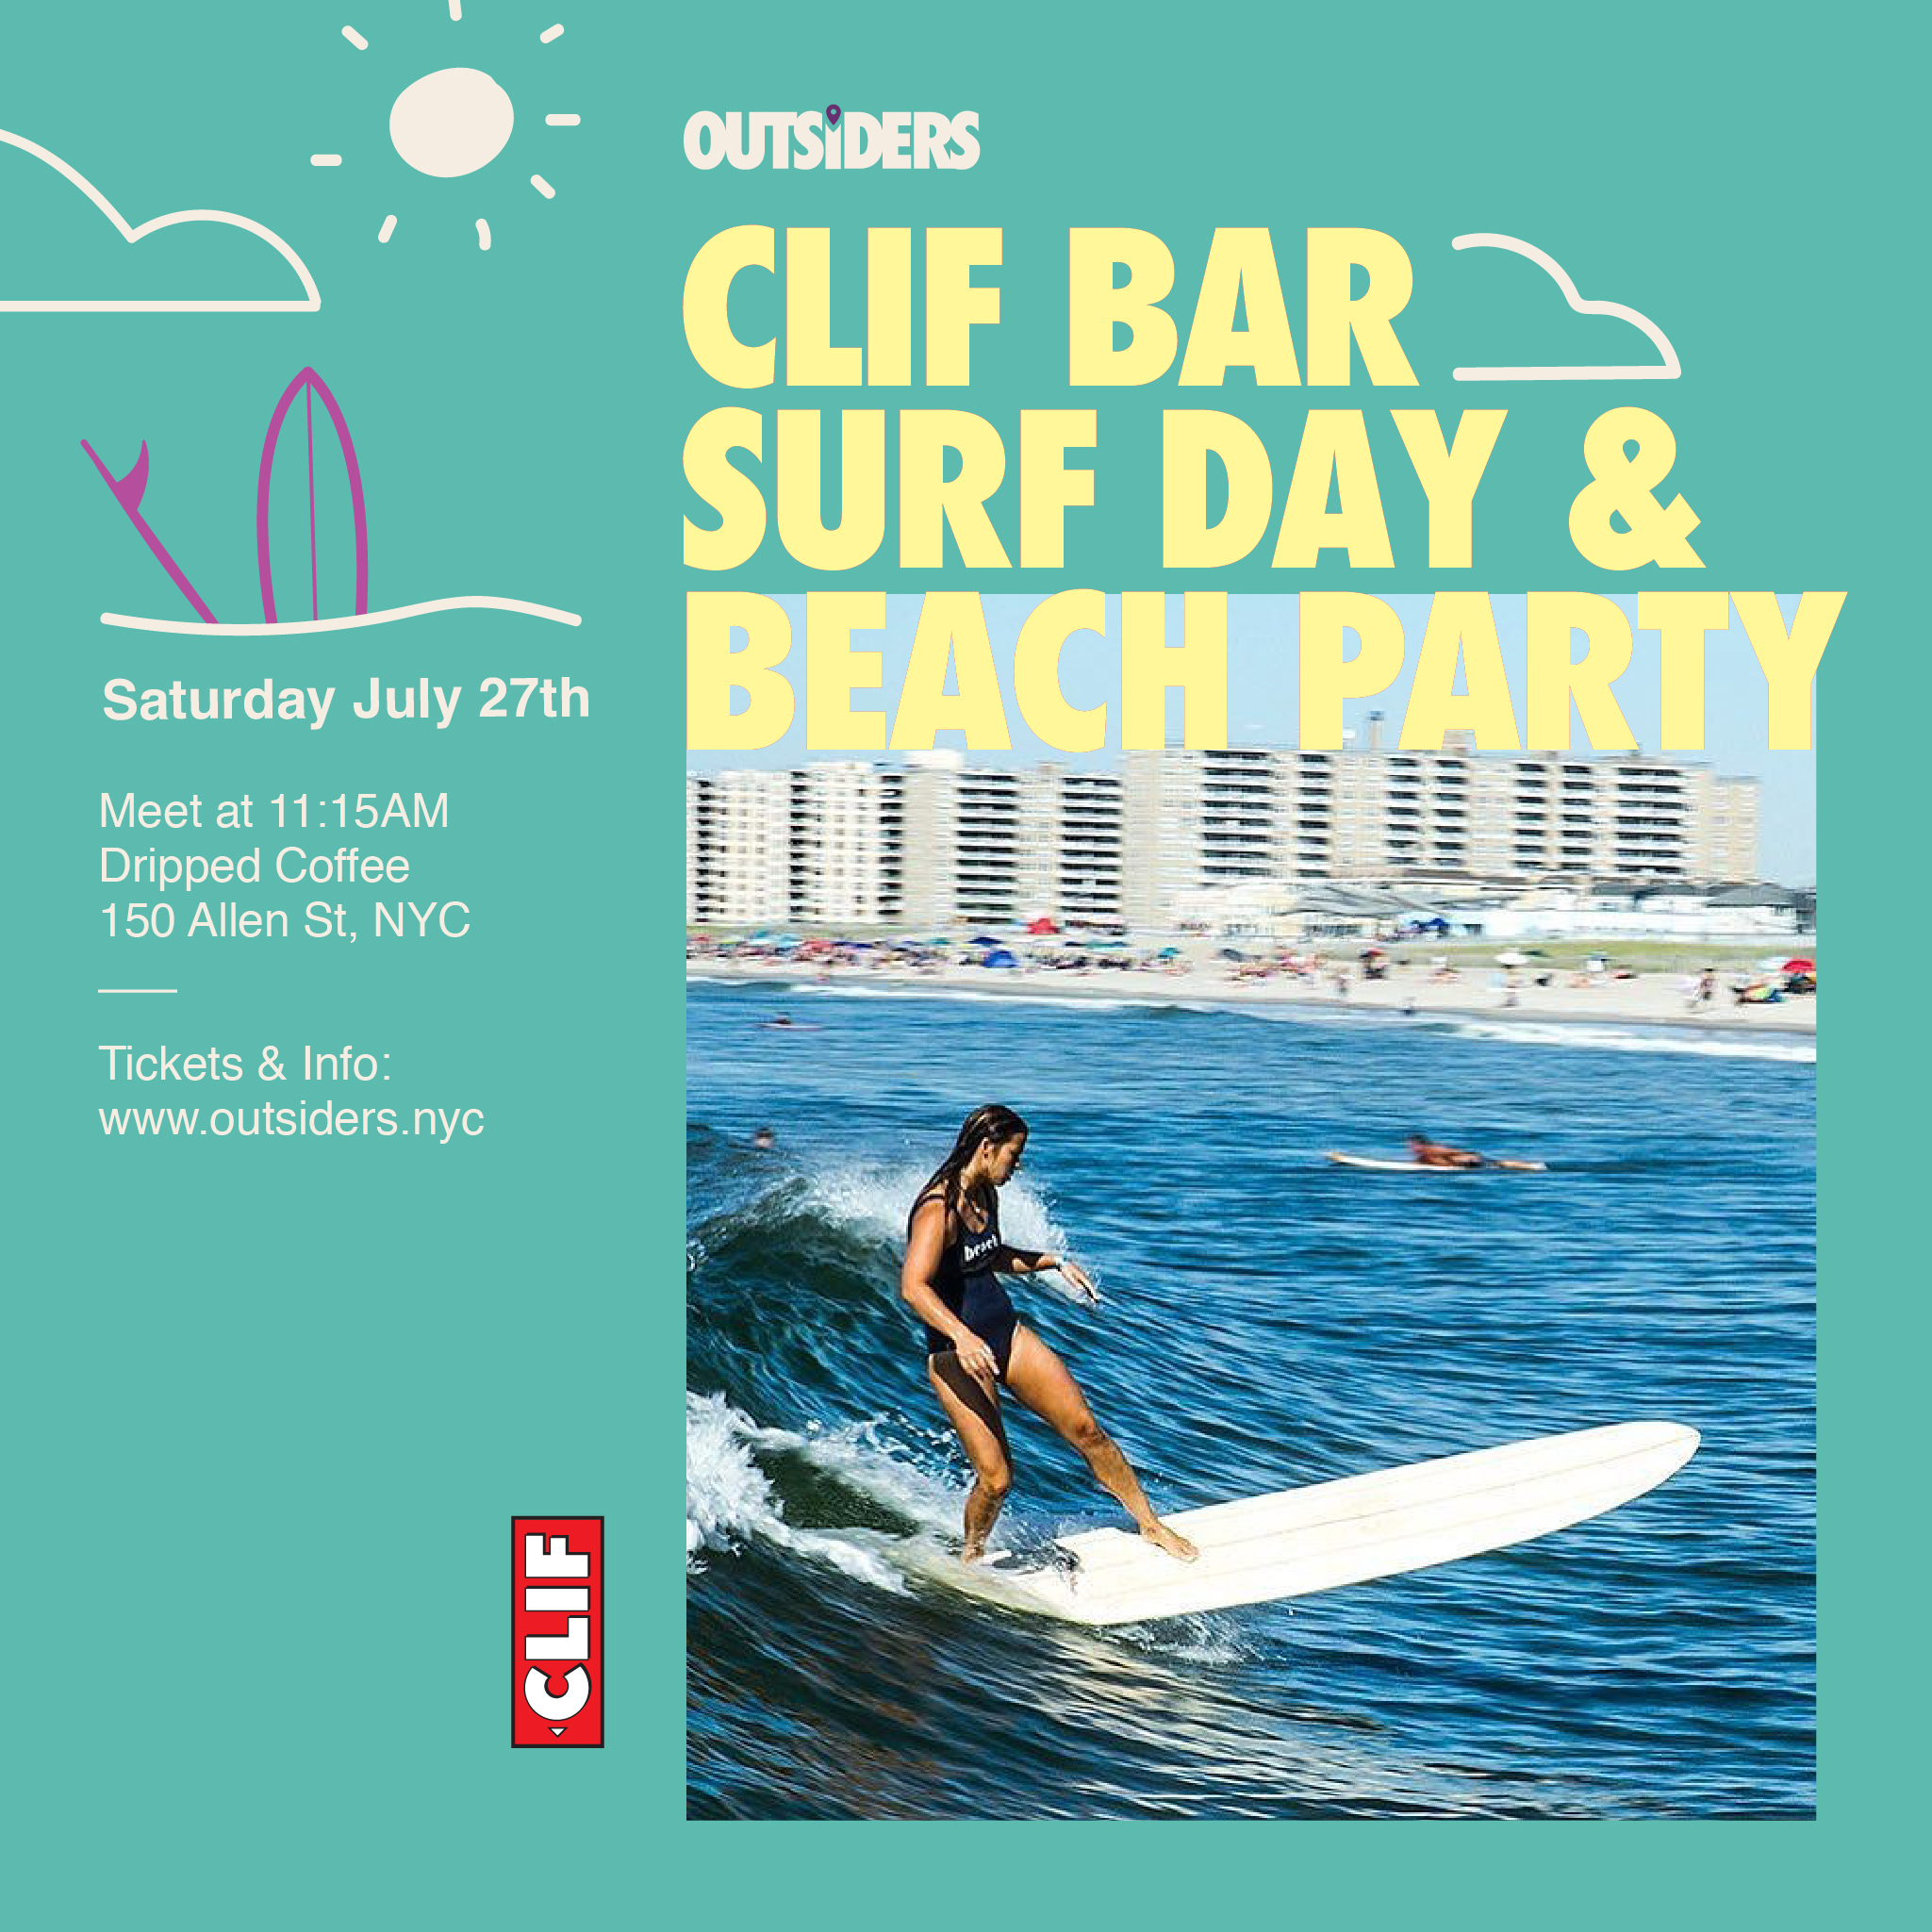 Clif Bar Surf Day & Beach Party